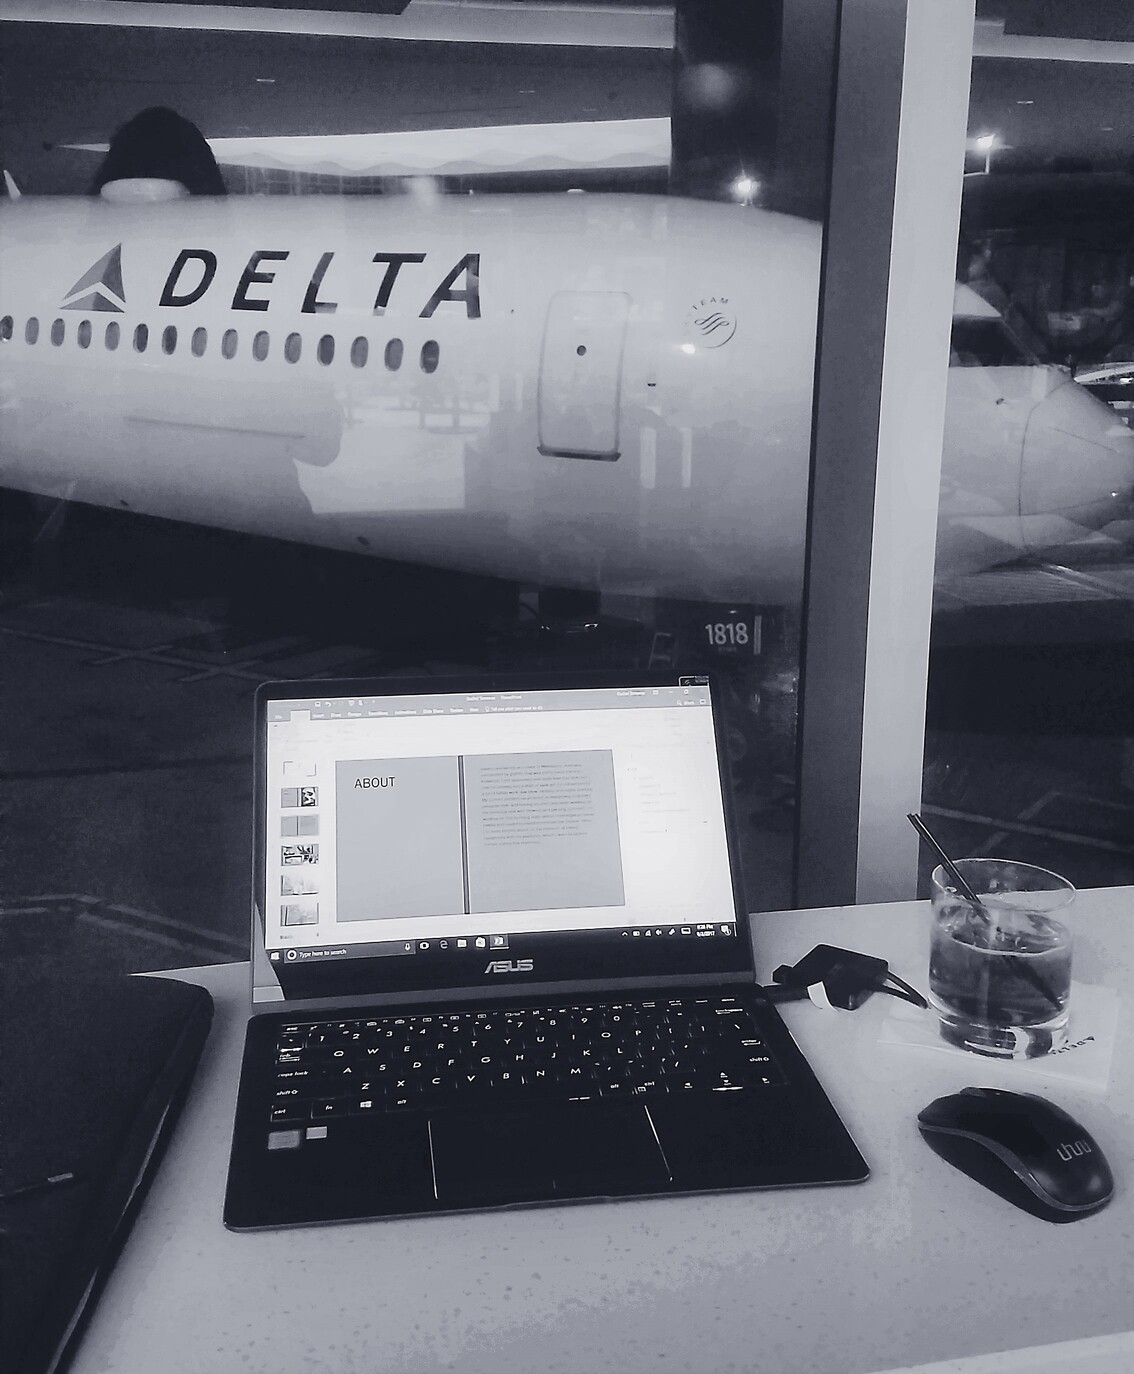 Working from the Delta lounge with airplane in background